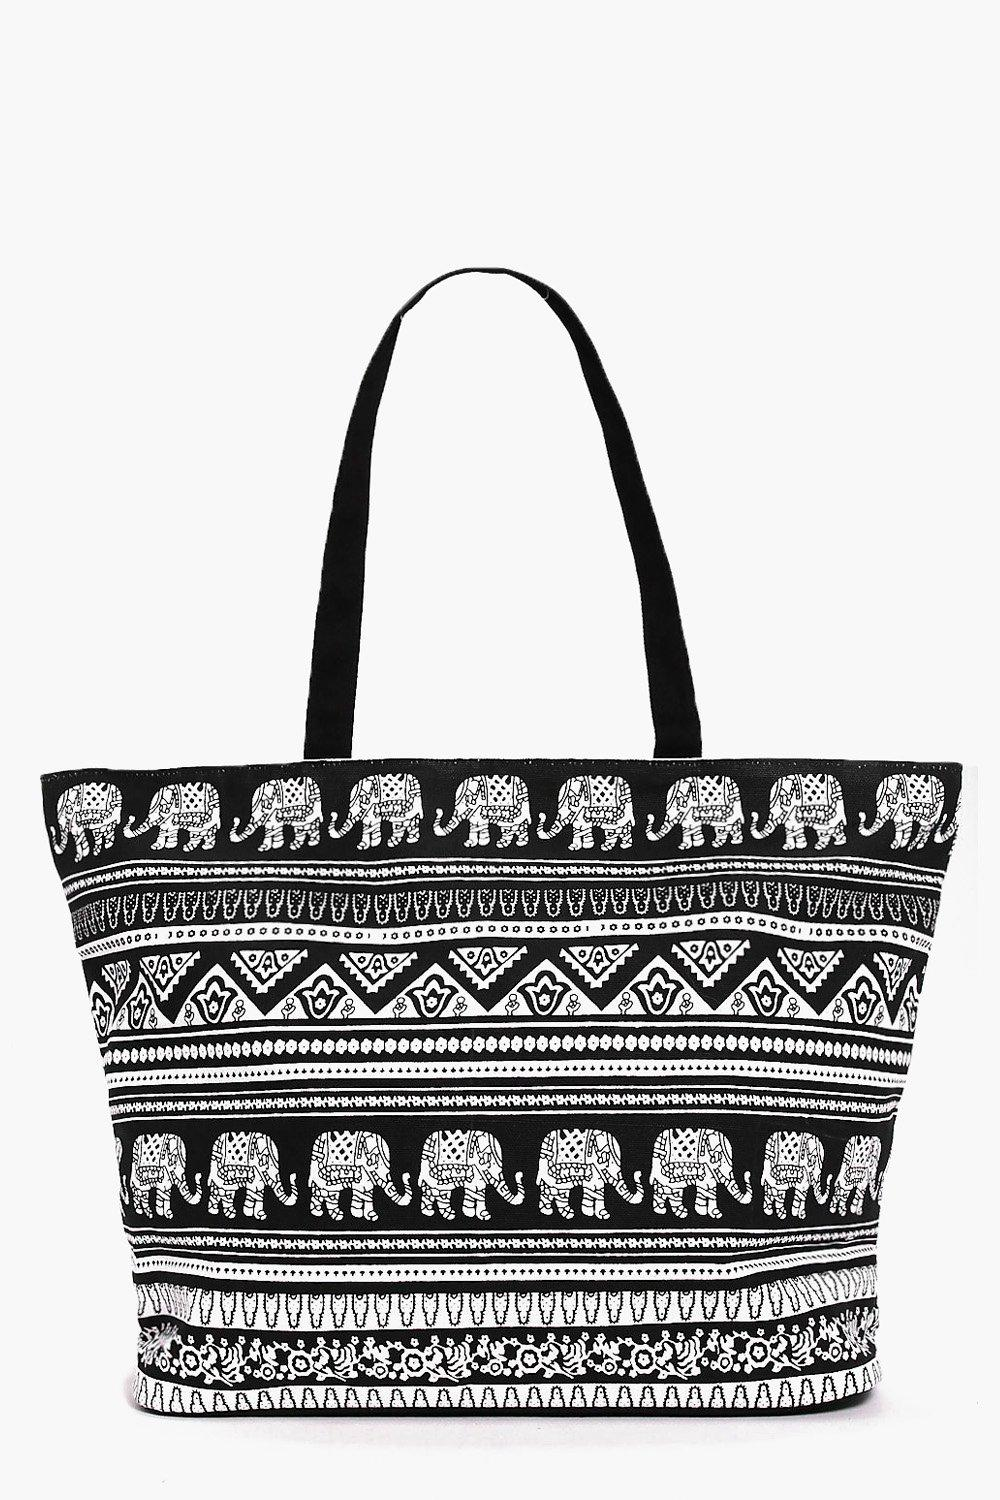 Elephant Print Beach Bag - black - Willow Elephant